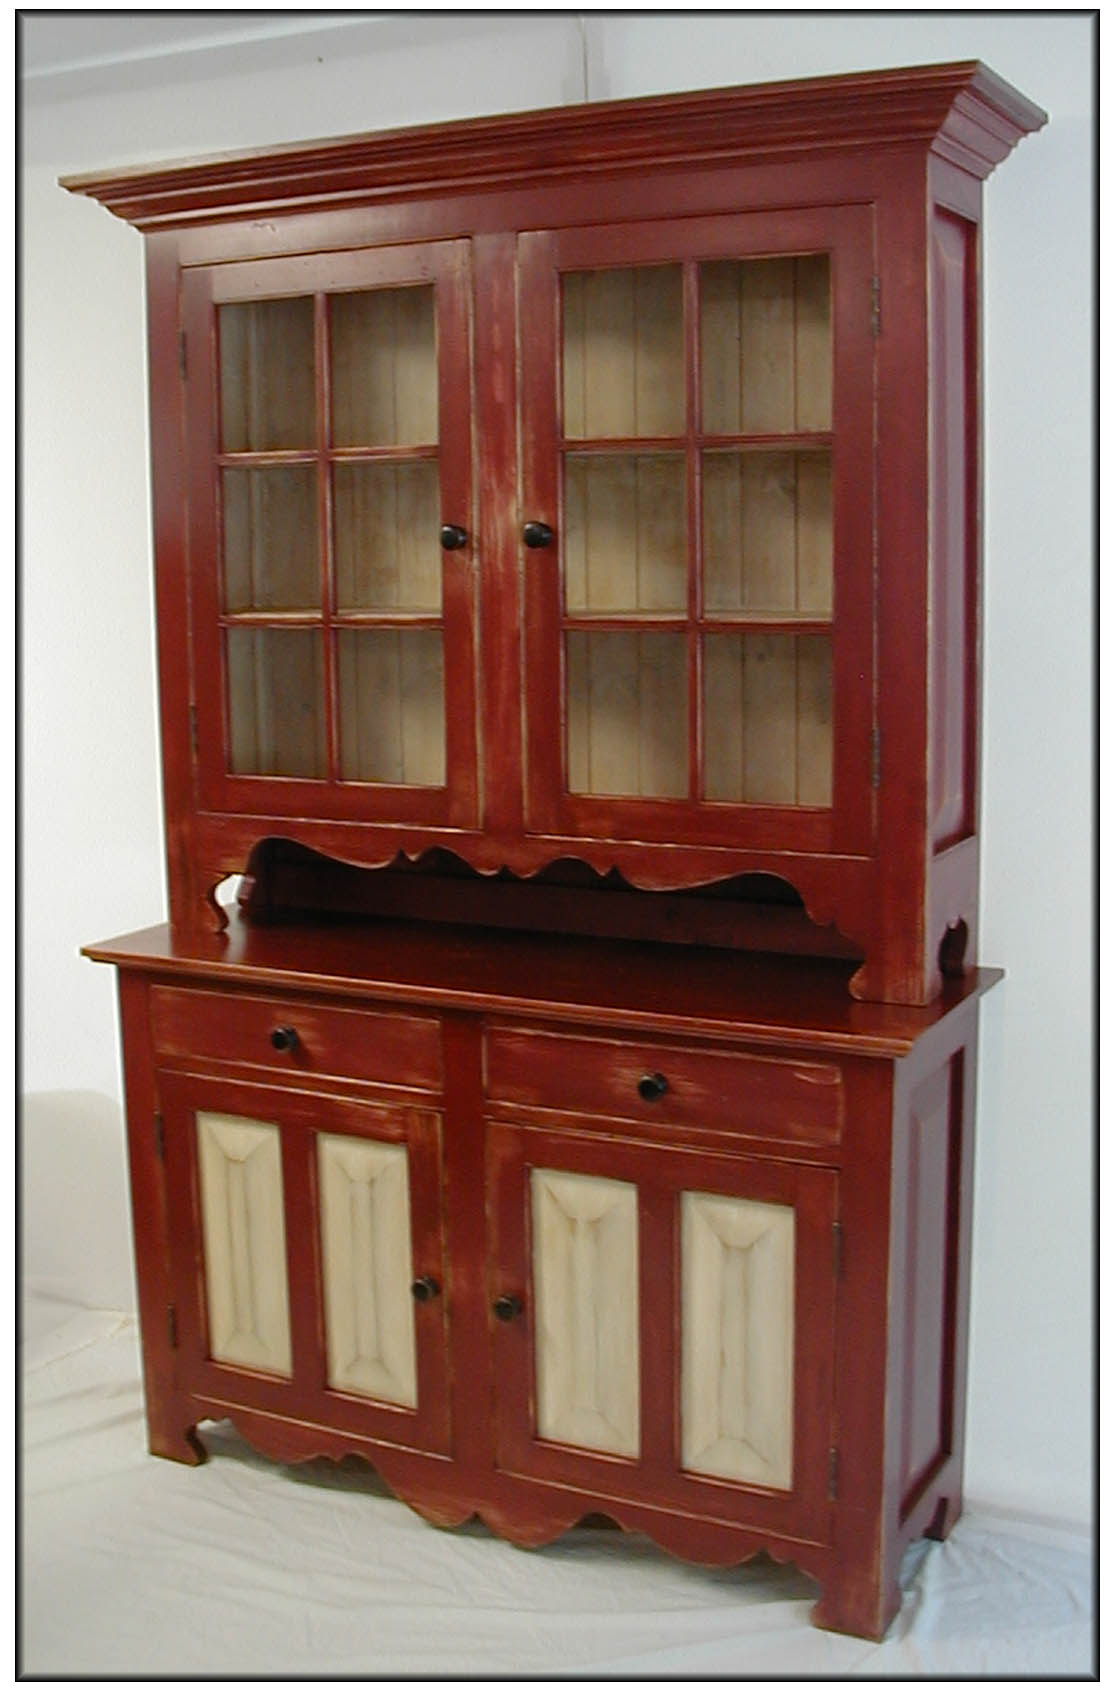 Flat to wall step back cupboard painted antique replica